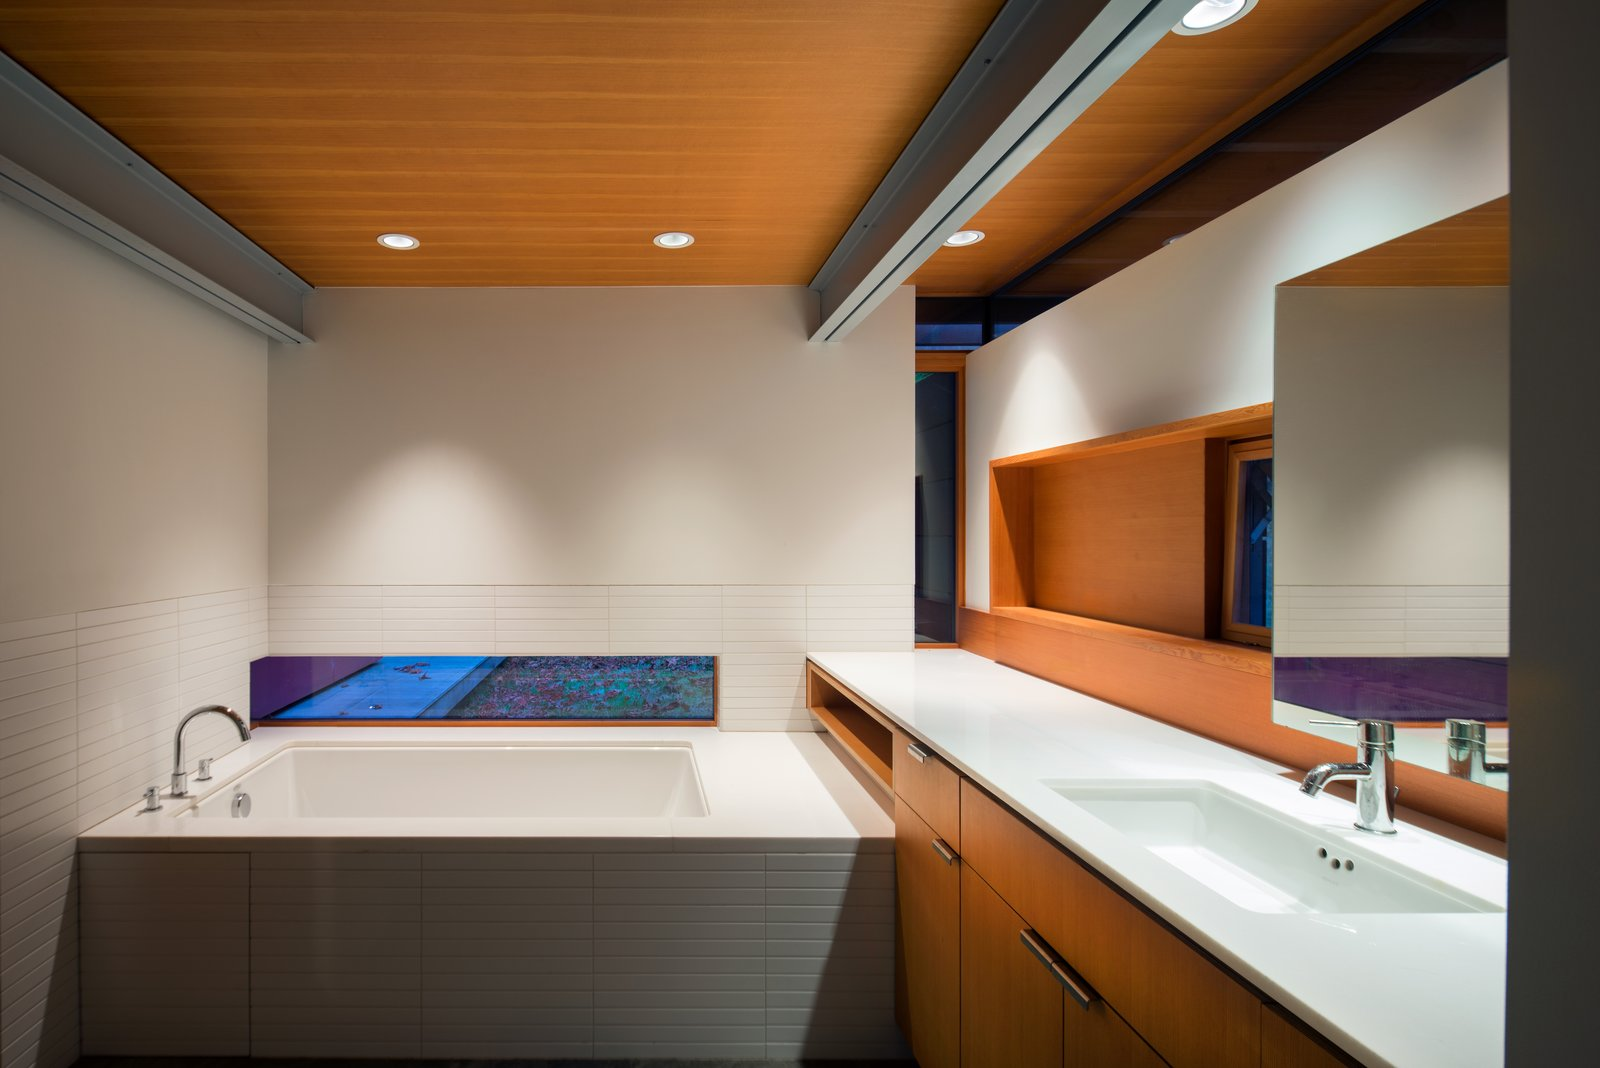 A horizontal sliver of window allows light into the bathroom, with tile by Ann Sacks, a Zuma Collection C Series tub, a Kohler tub filler, and an Elkay faucet.  Photo 13 of 16 in An Off-the-Grid Island Home for a Seattle Music Producer